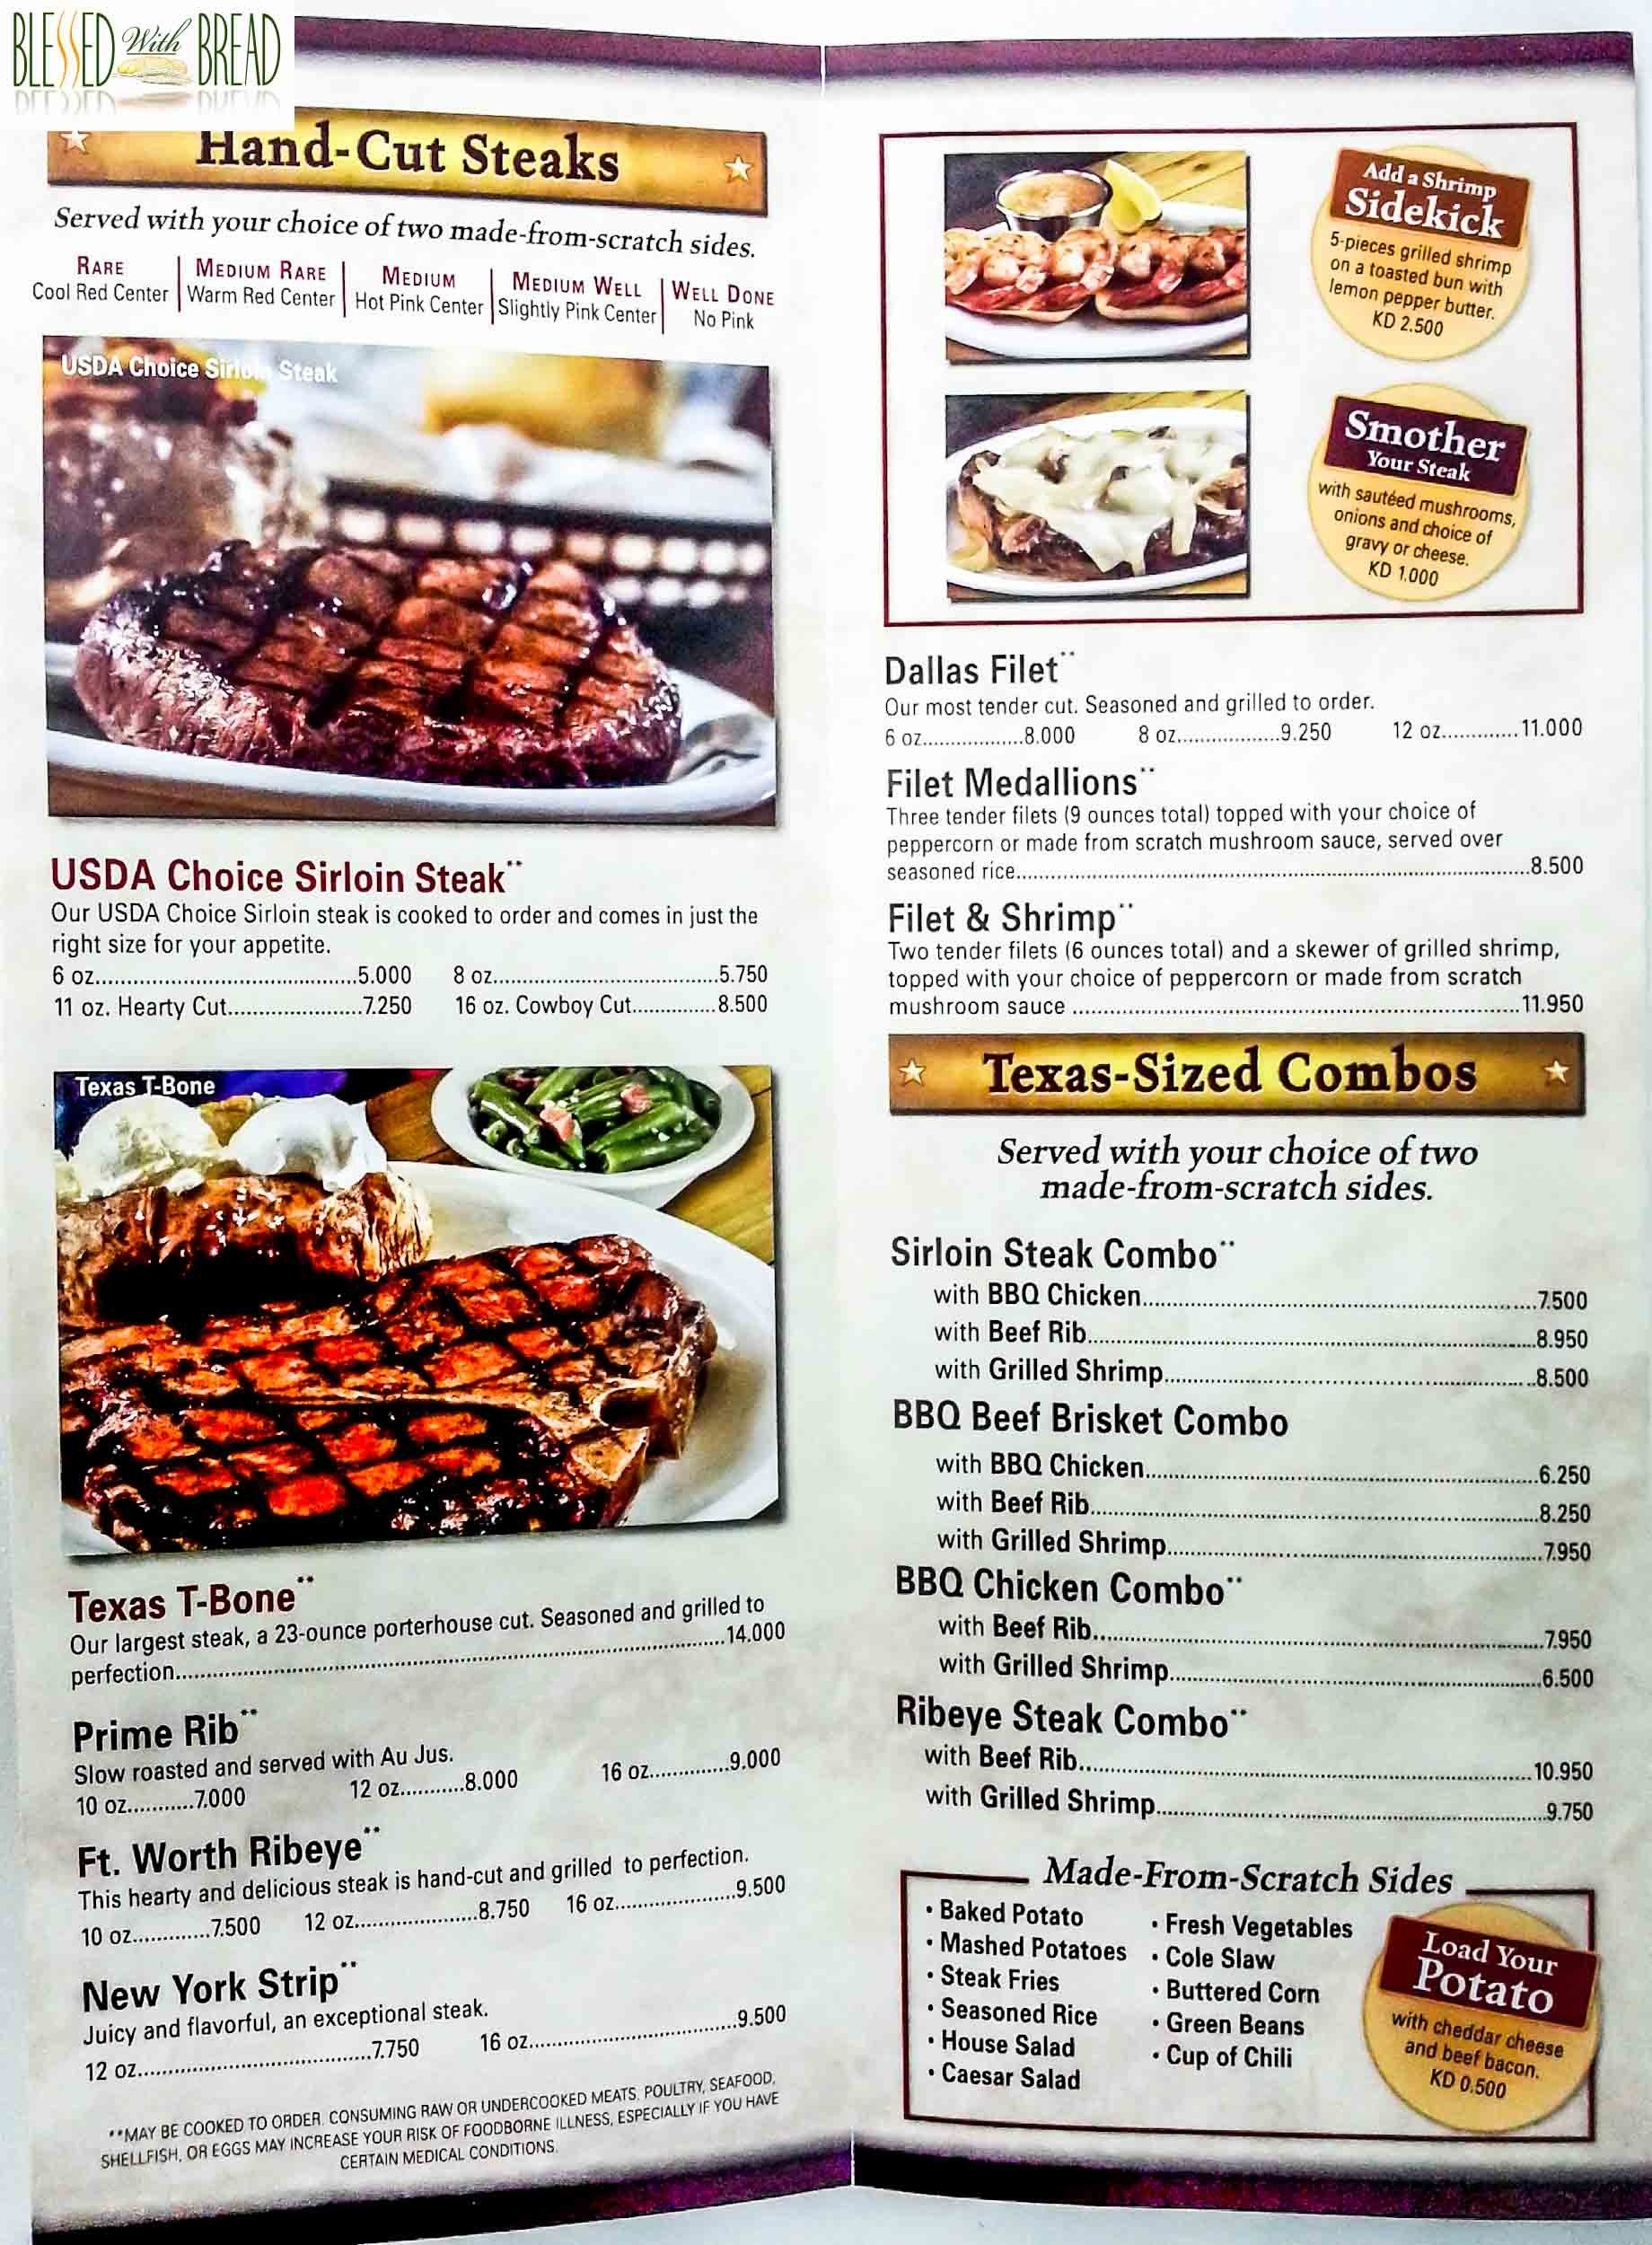 Roadhouse Printable Coupons 2018 Texas - Texas Roadhouse Free Appetizer Printable Coupon 2015